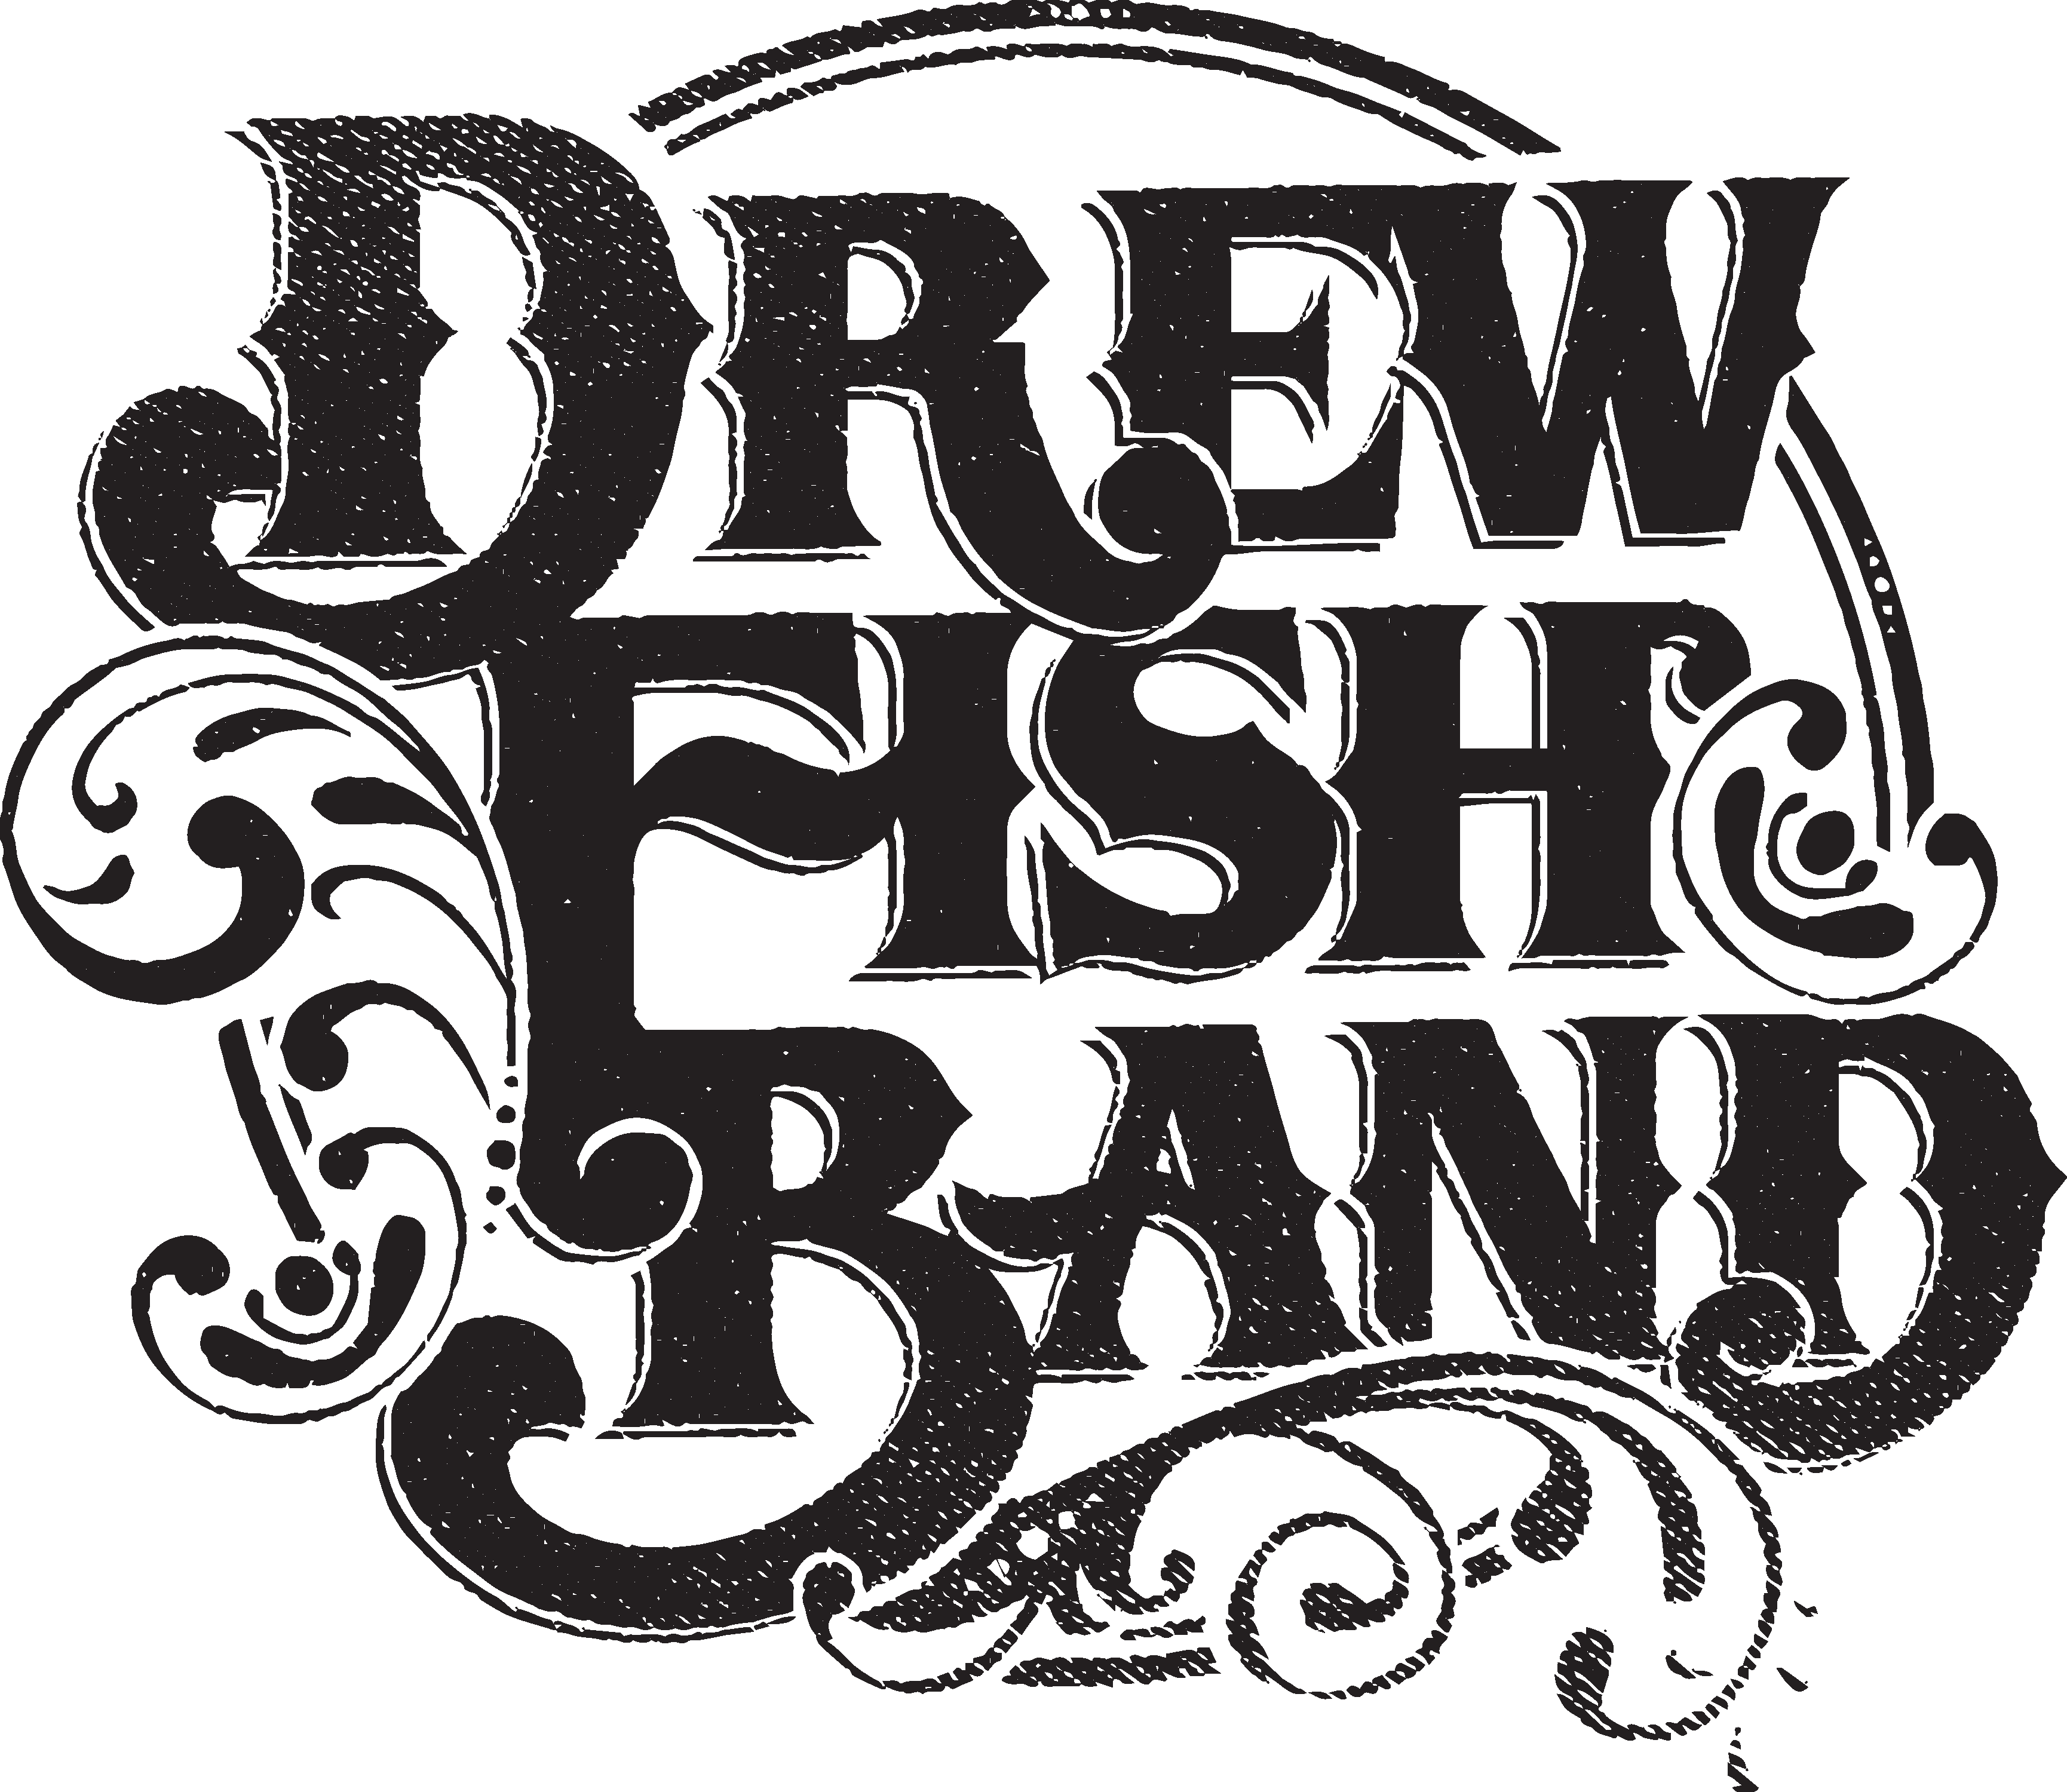 Drew Fish Band, Llc